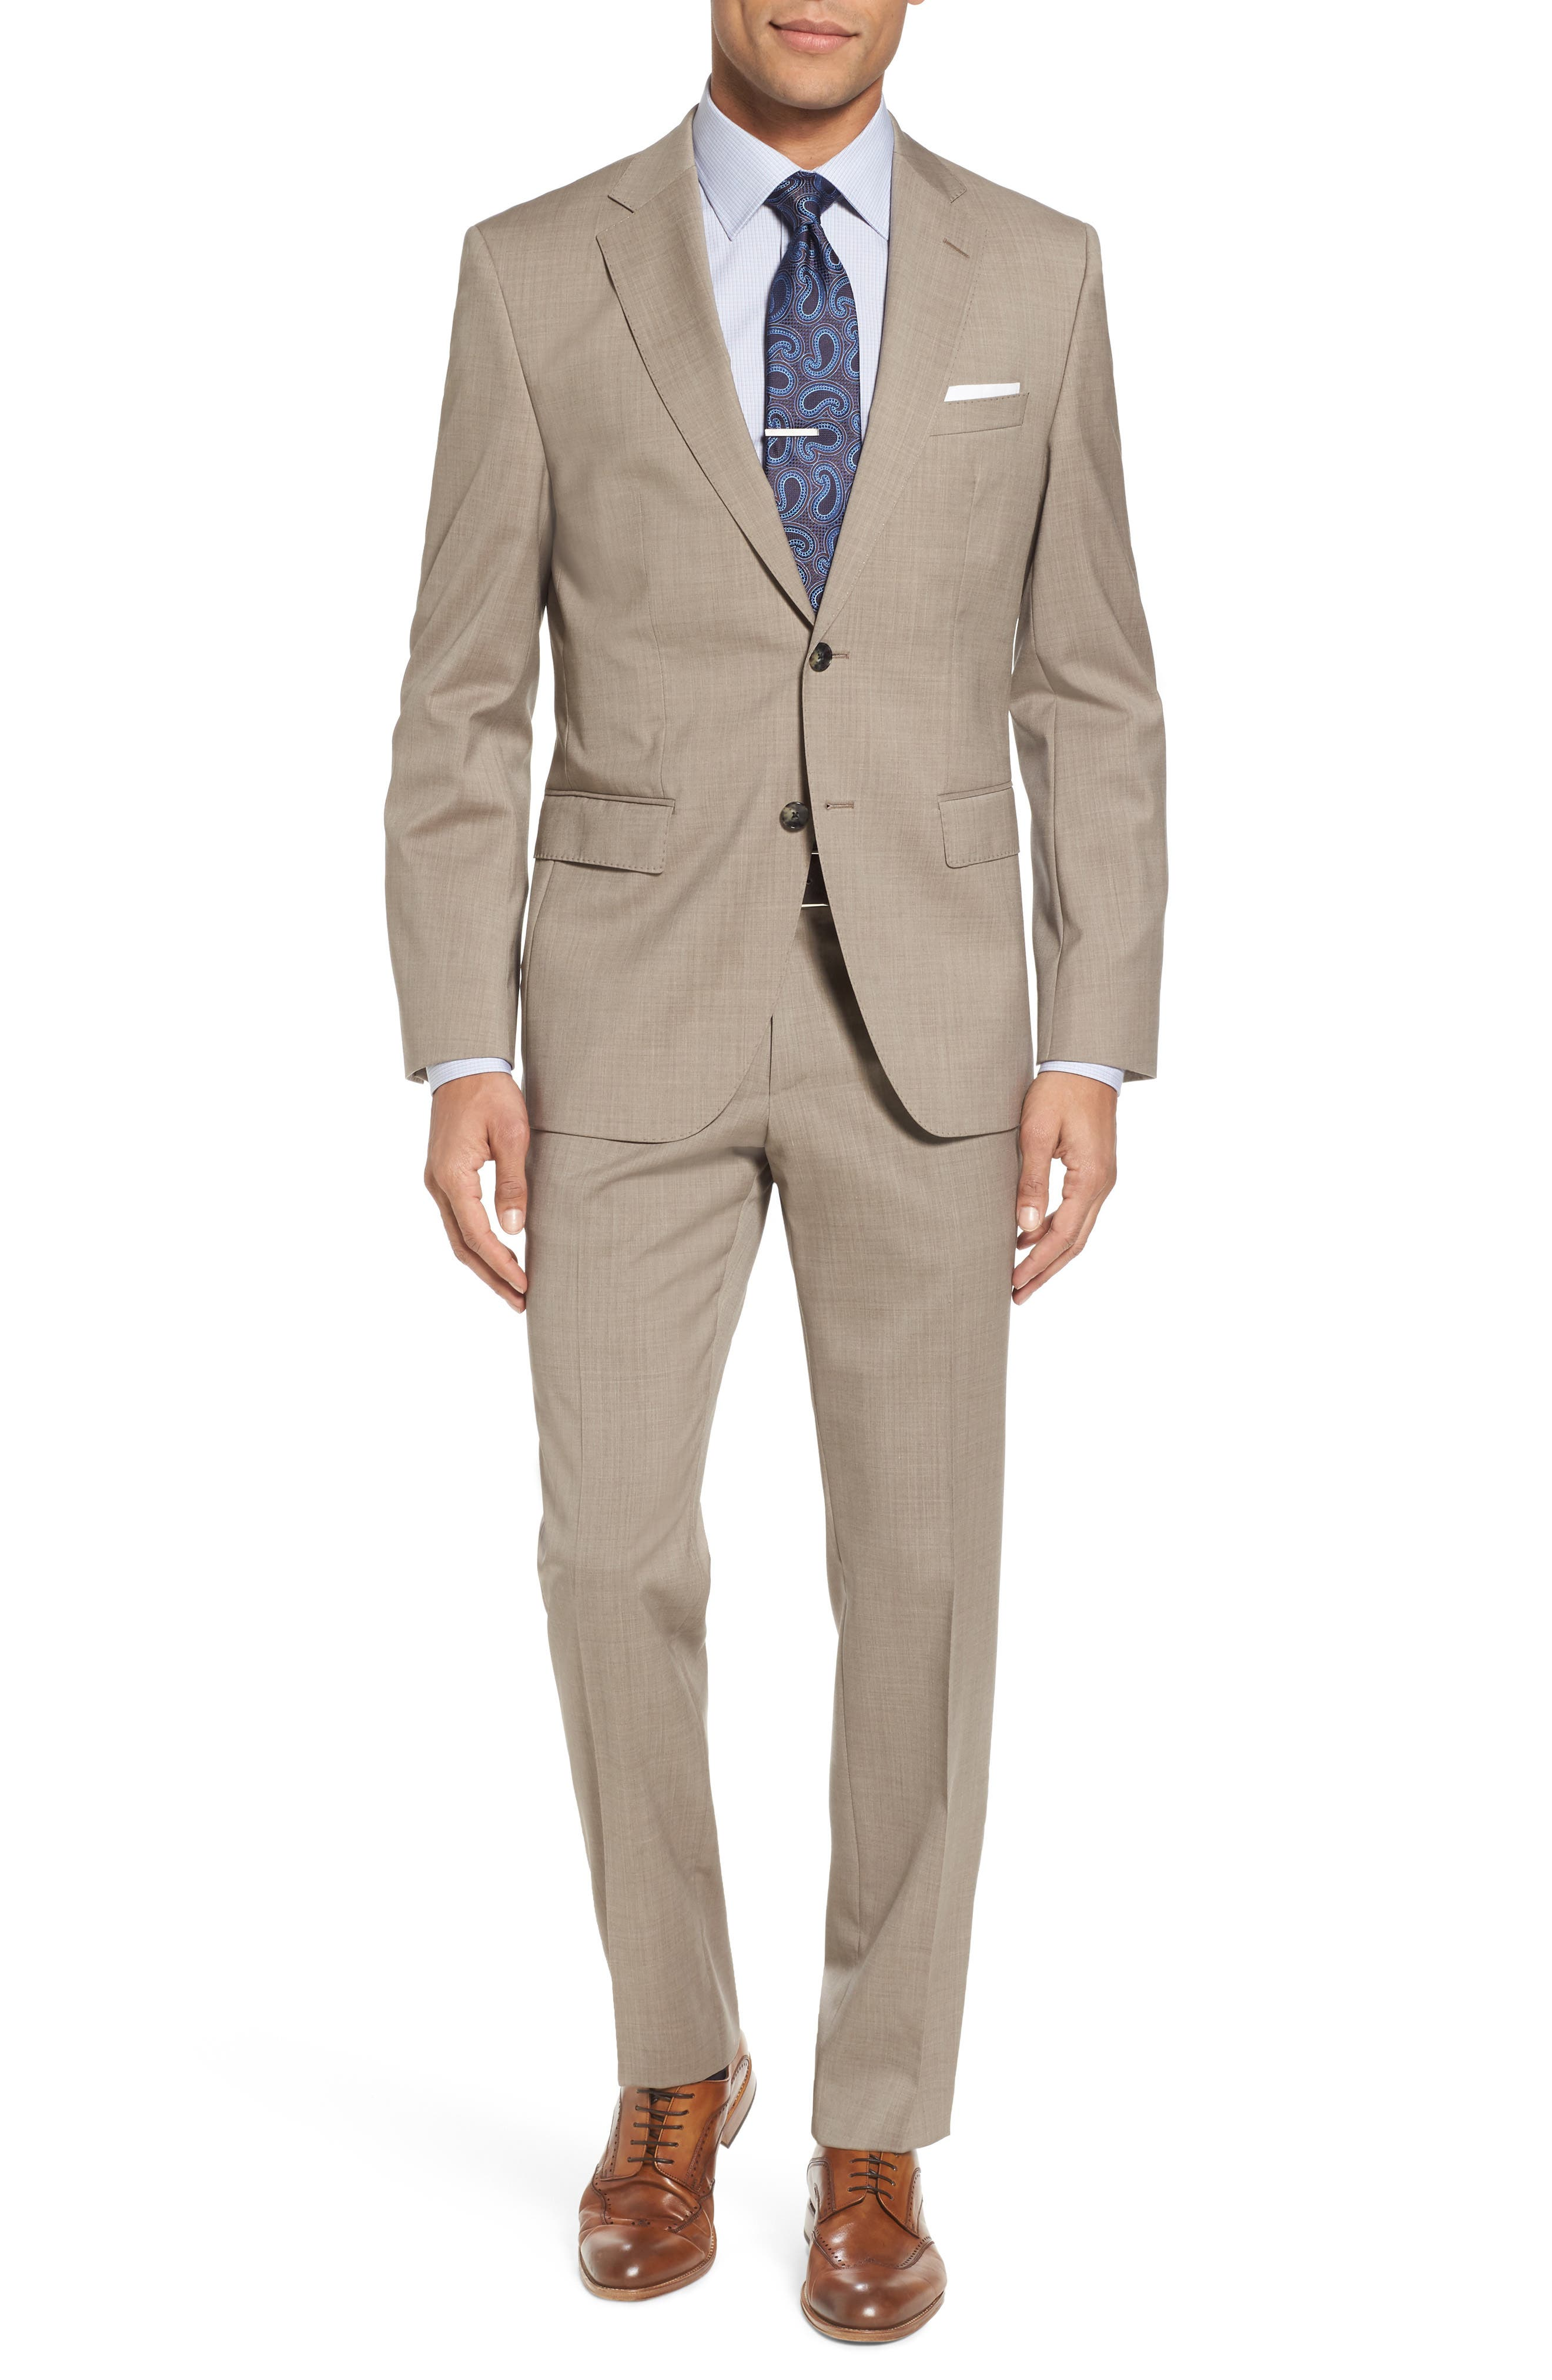 Johnstons/Lenon Classic Fit Solid Wool Suit,                             Main thumbnail 1, color,                             Medium Beige